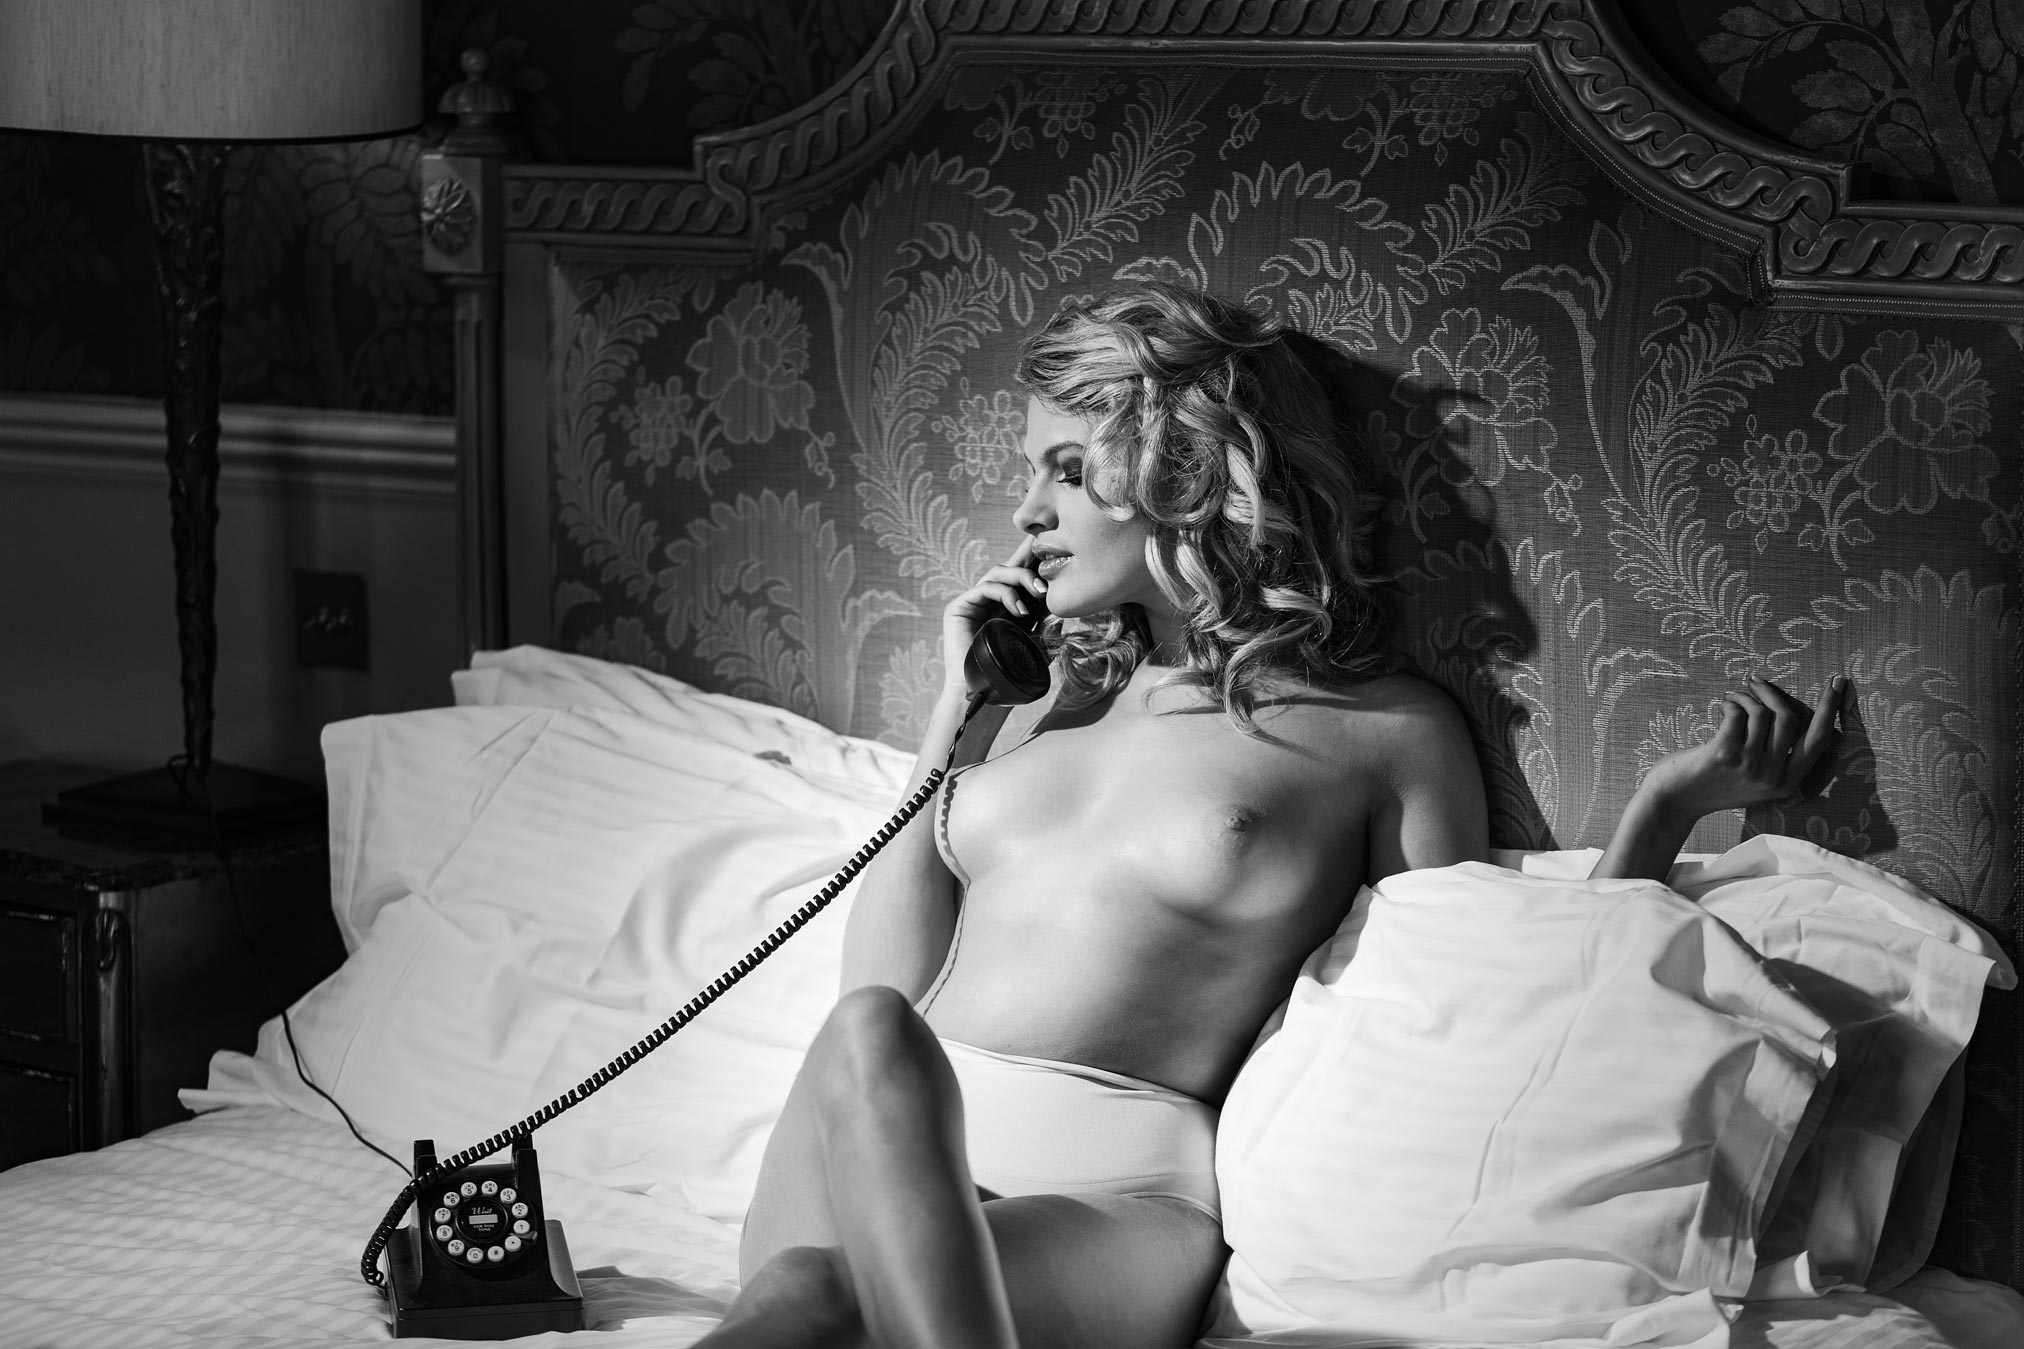 Chloe Jasmine naked on the bed making a phone call. Monochrome